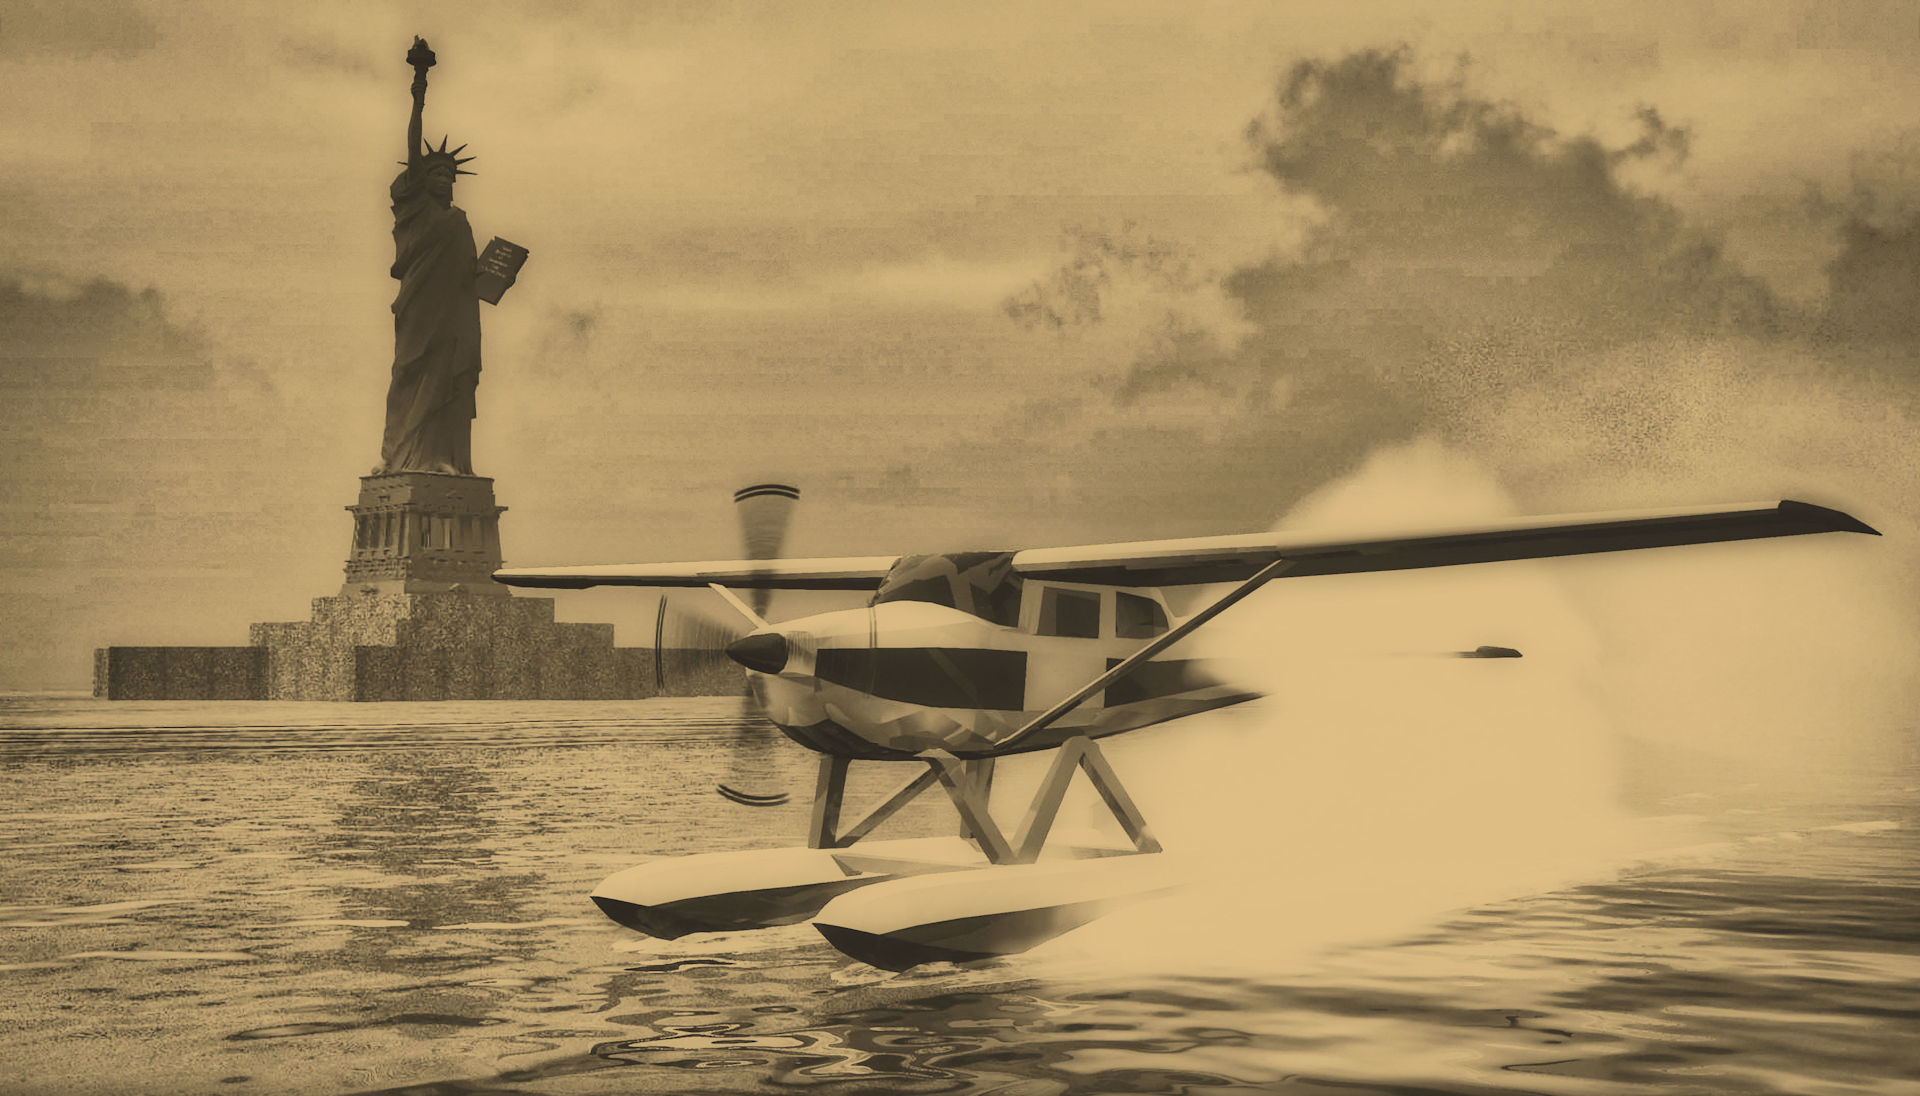 The Statue of Liberty and seaplane